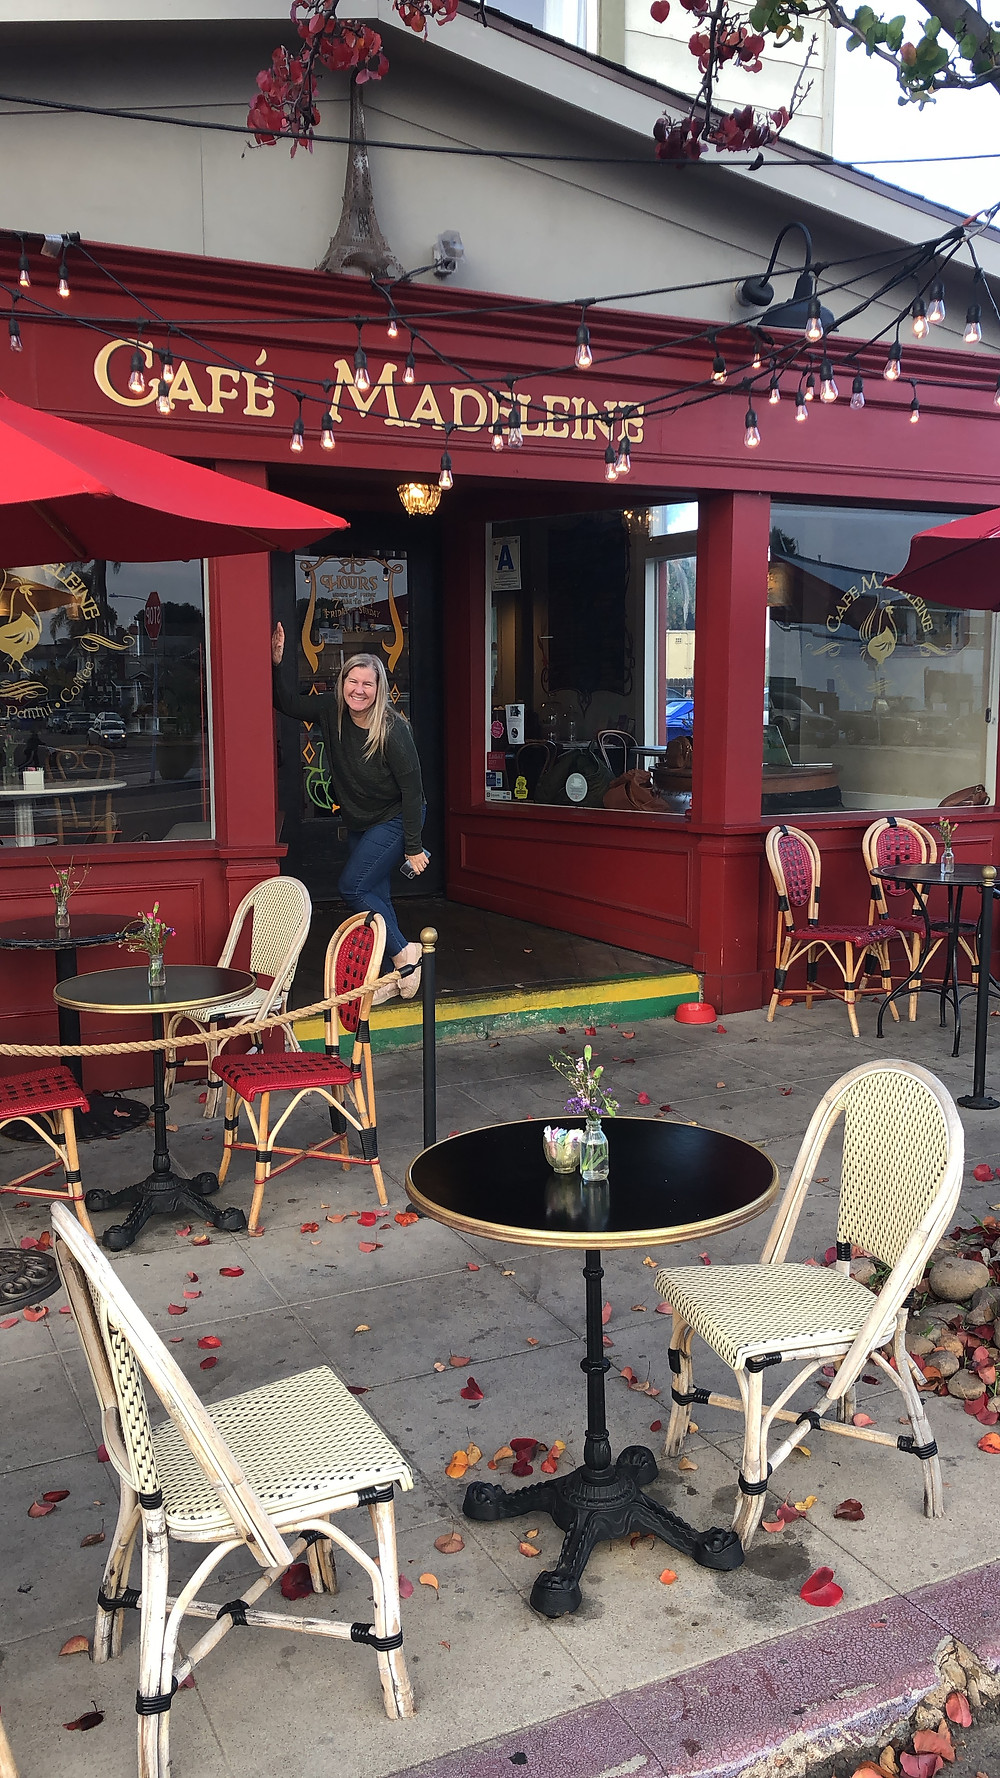 Siri Kay Jostad of Wander Away with Siri Kay in front of Cafe Madeleine in South Park San Diego California